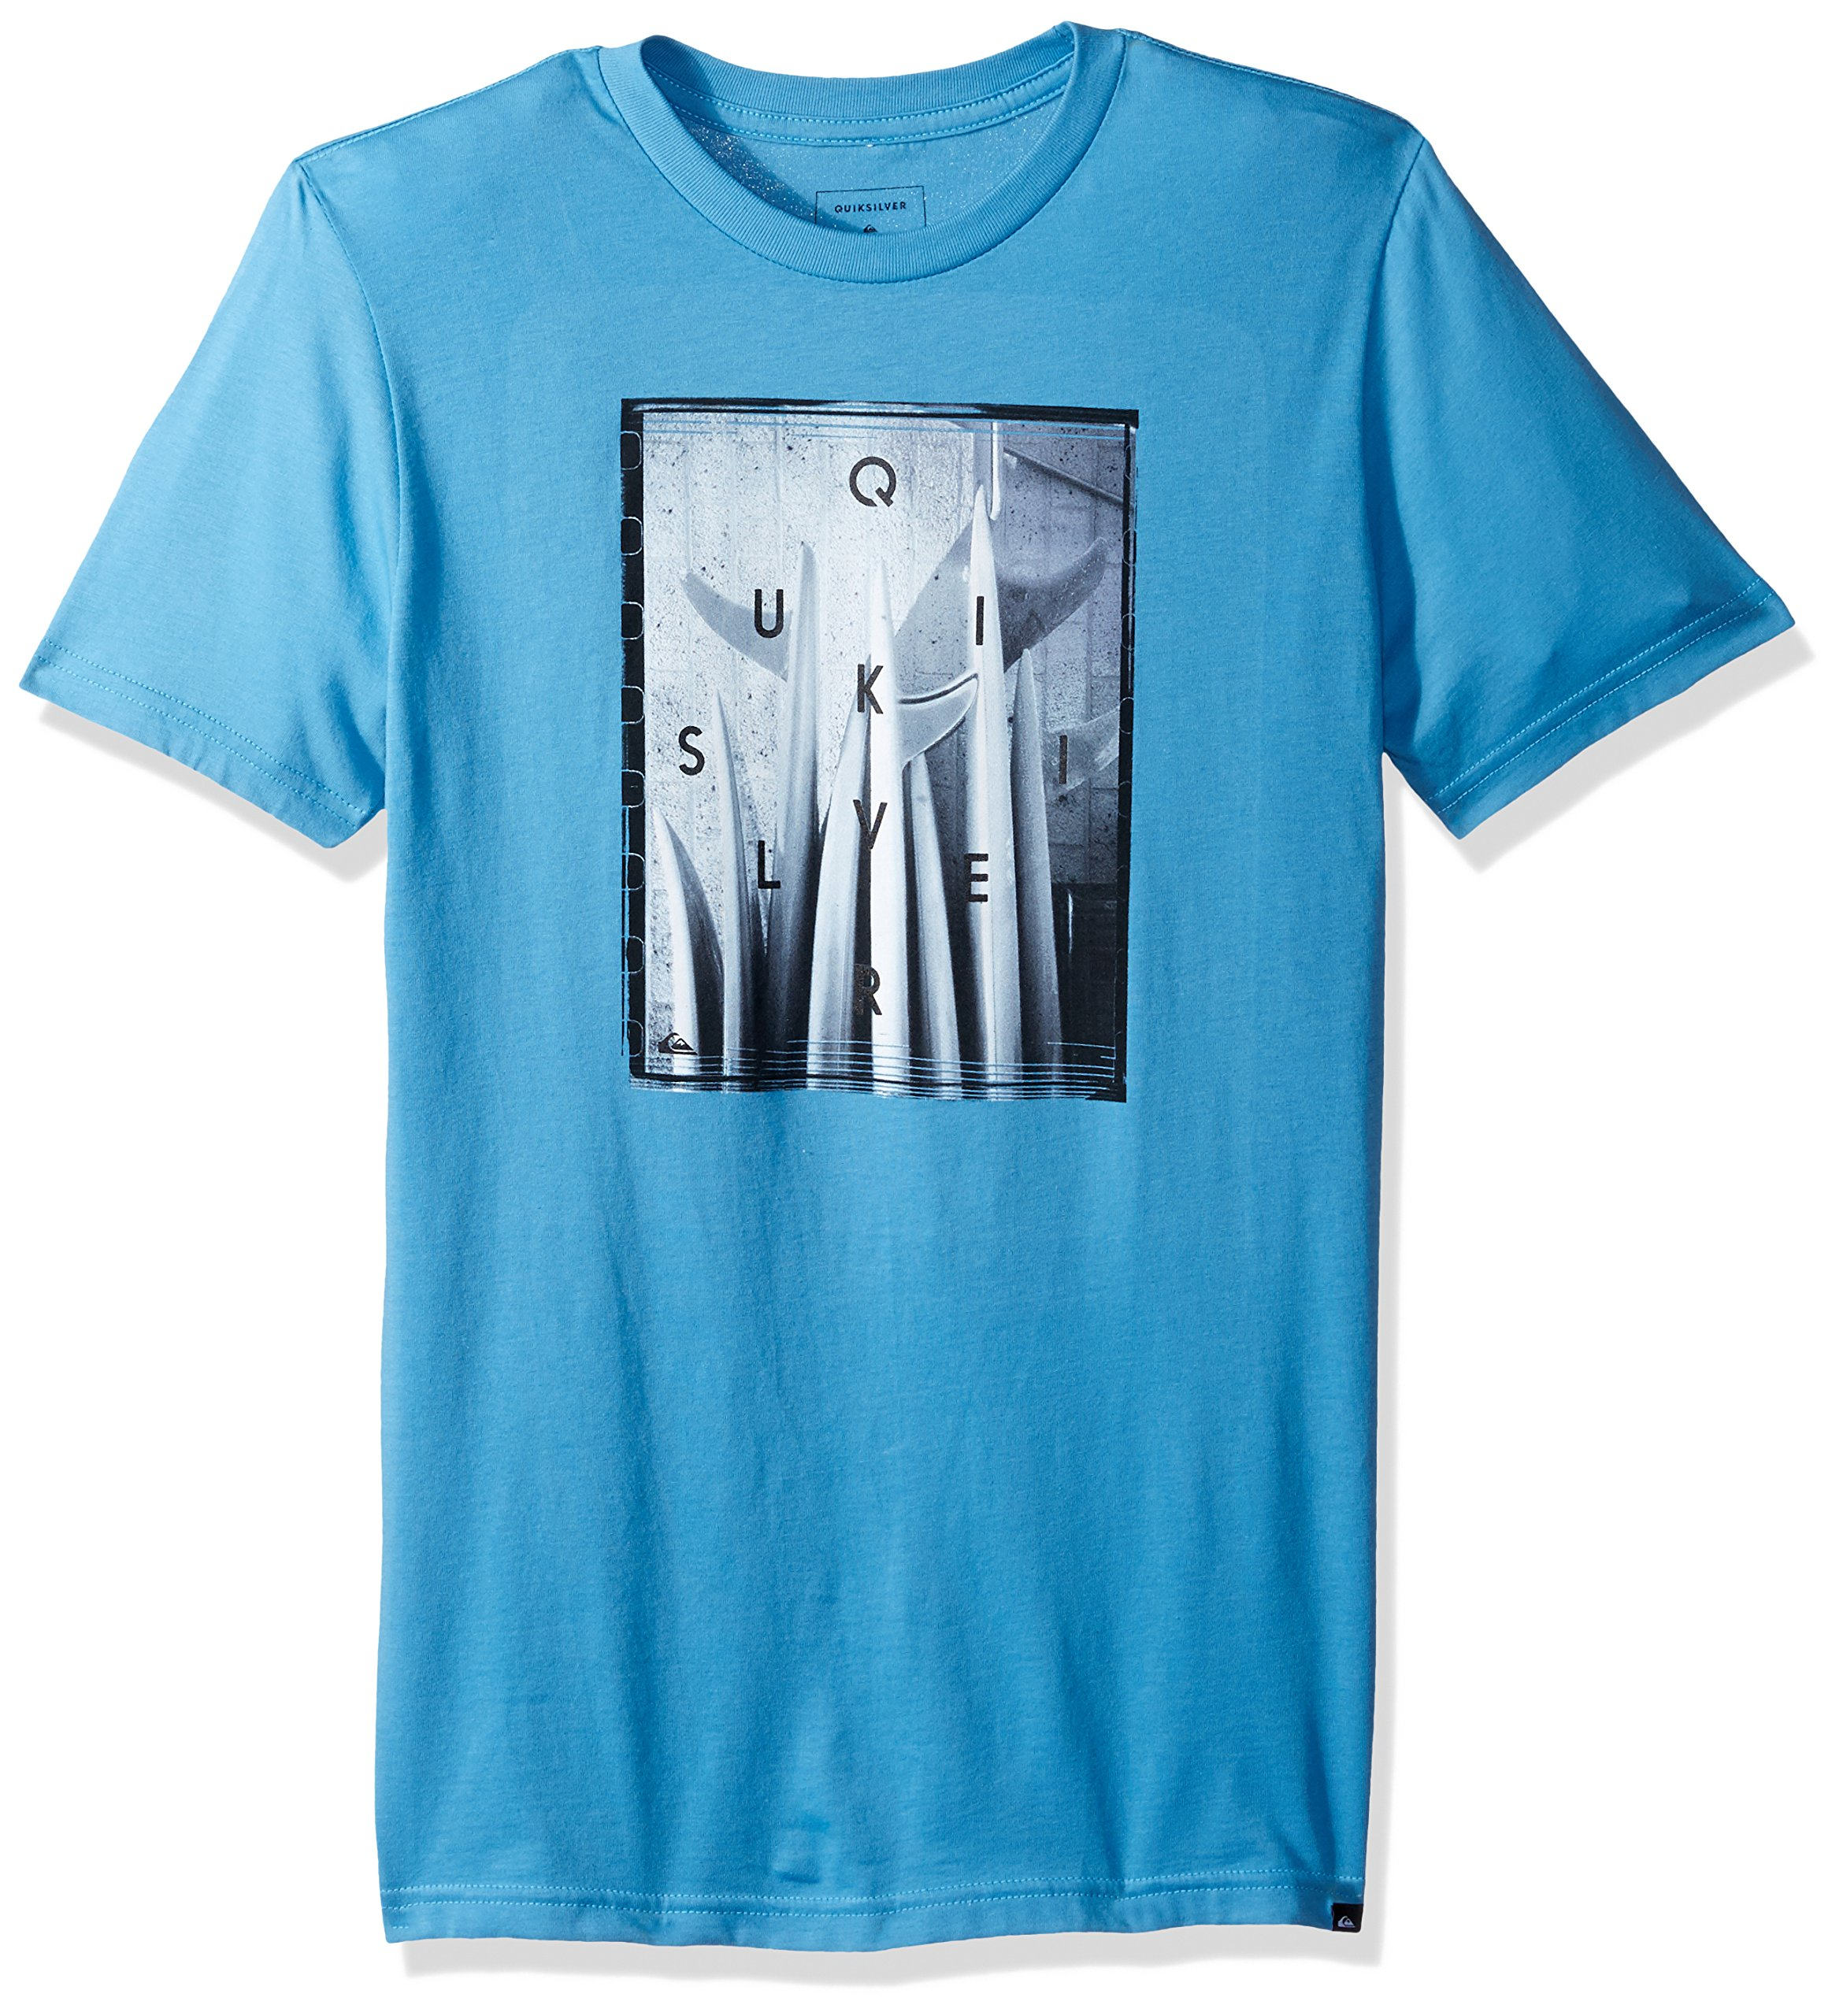 Quiksilver Big Boys' Quiver Central Youth Tee Shirt, Cendre Blue, L/14